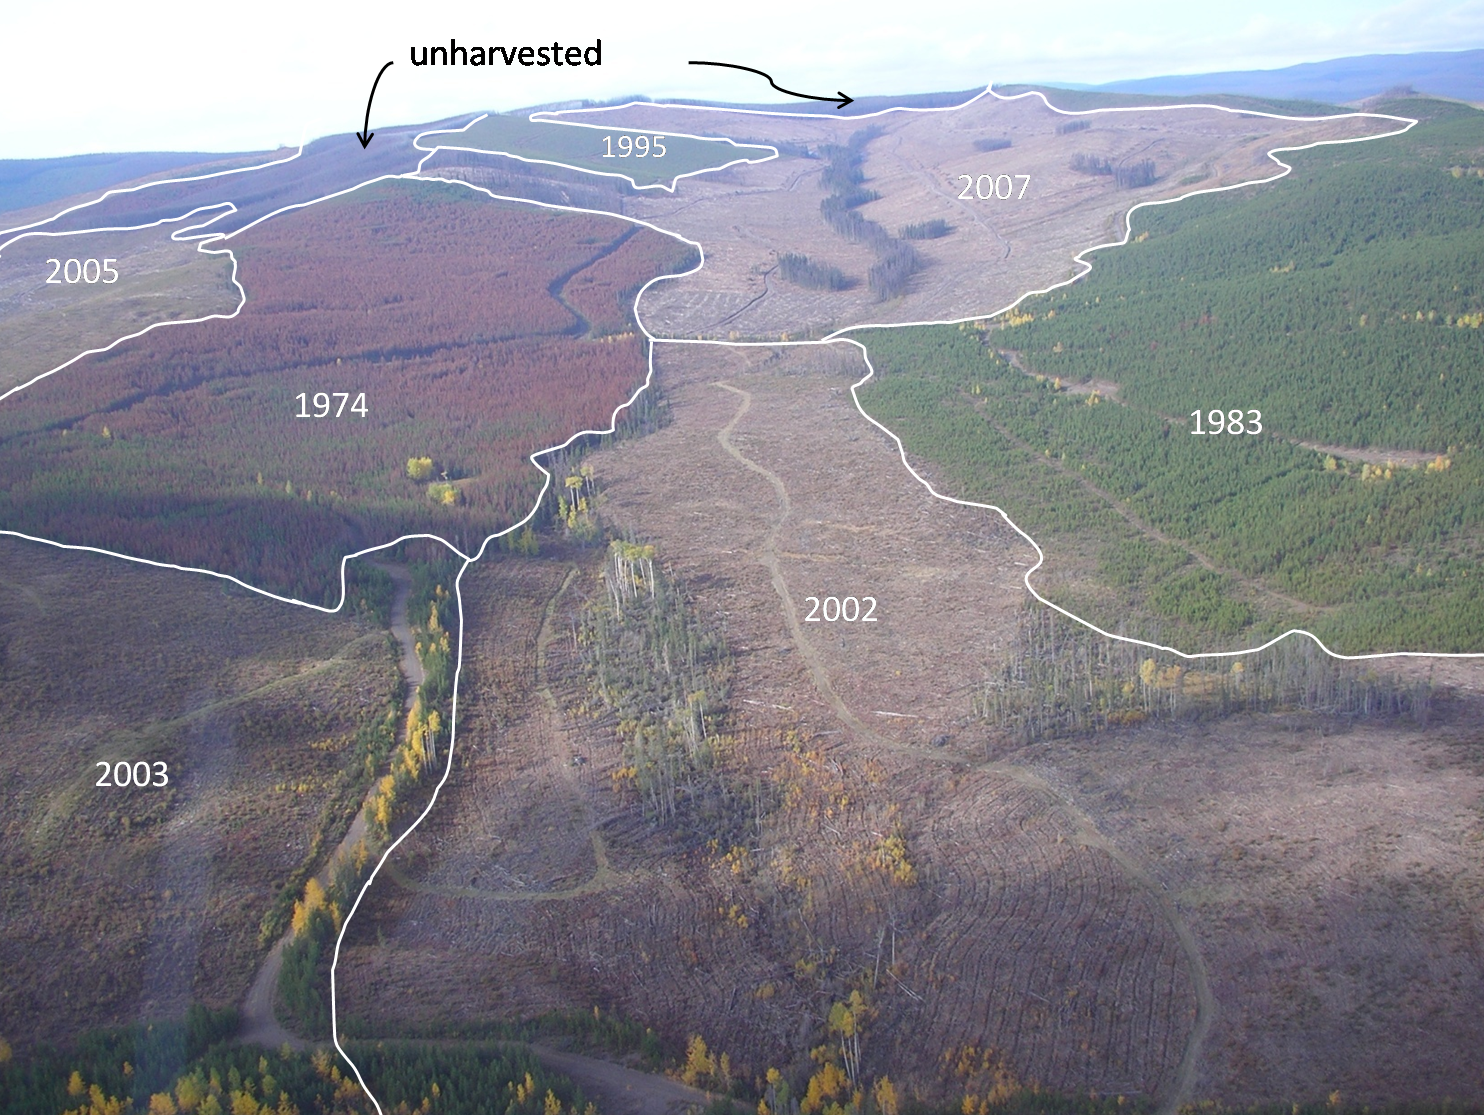 A picture of a 600-hectare portion of forest, included in a 2009 report, is marked up to show dates of harvest. Illustration provided by the B.C. Forest Practices Board